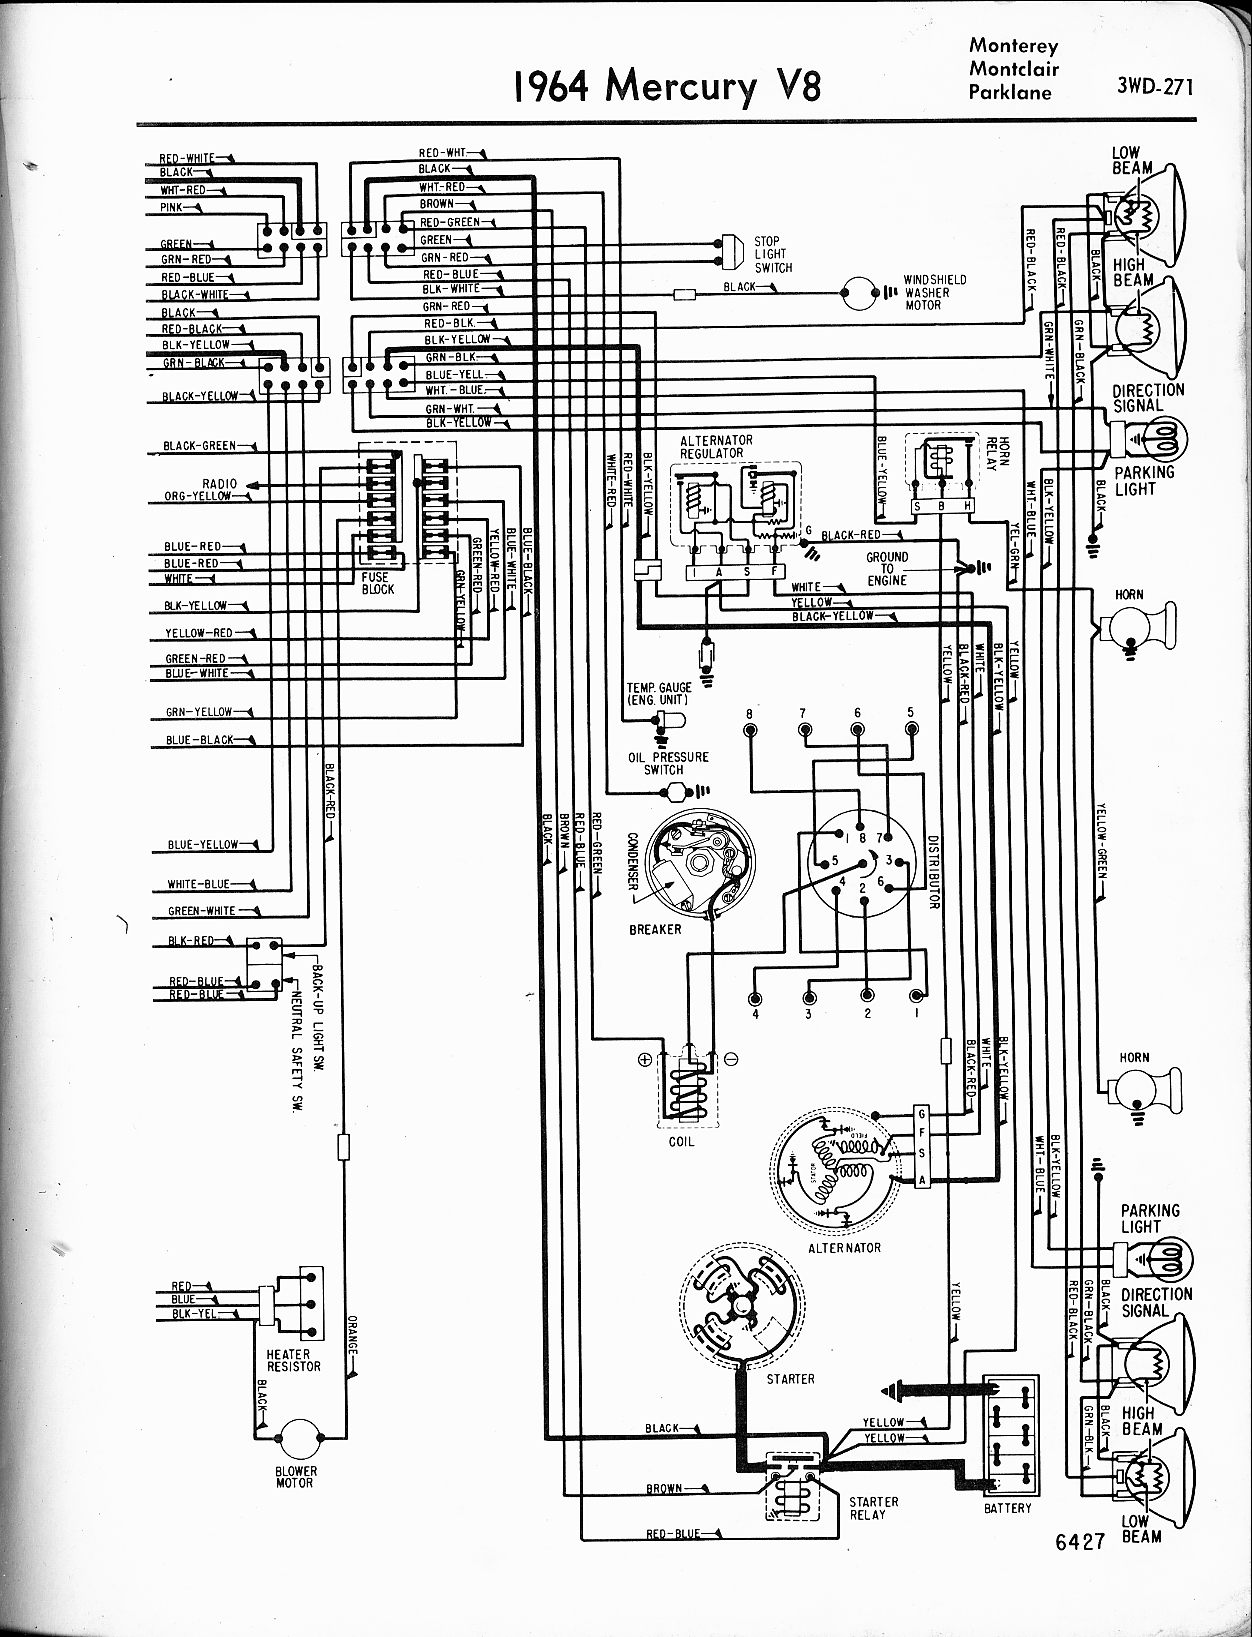 1956 mercury montclair wiring diagram schematic rax bibliofem nl \u2022 56 Mercury Montclair Convertible 56 mercury montclair wiring diagram data wiring diagram update rh 10 caribeboten nl 1956 4 door mercury montclair 1957 mercury montclair